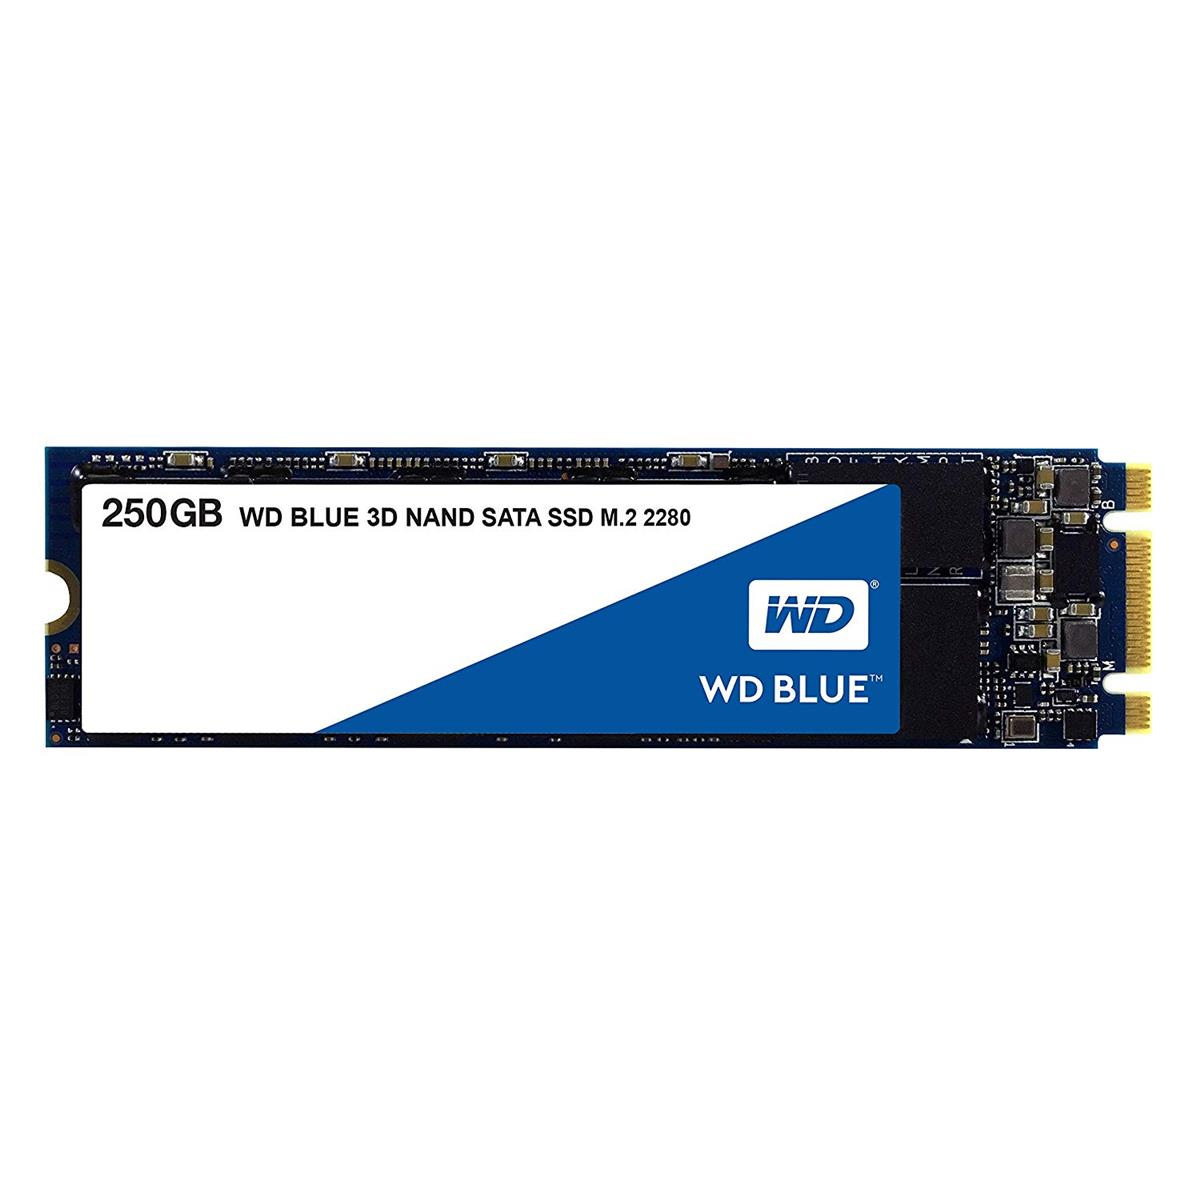 WD Blue (250GB) 3D NAND M.2 Solid State Drive (Internal)